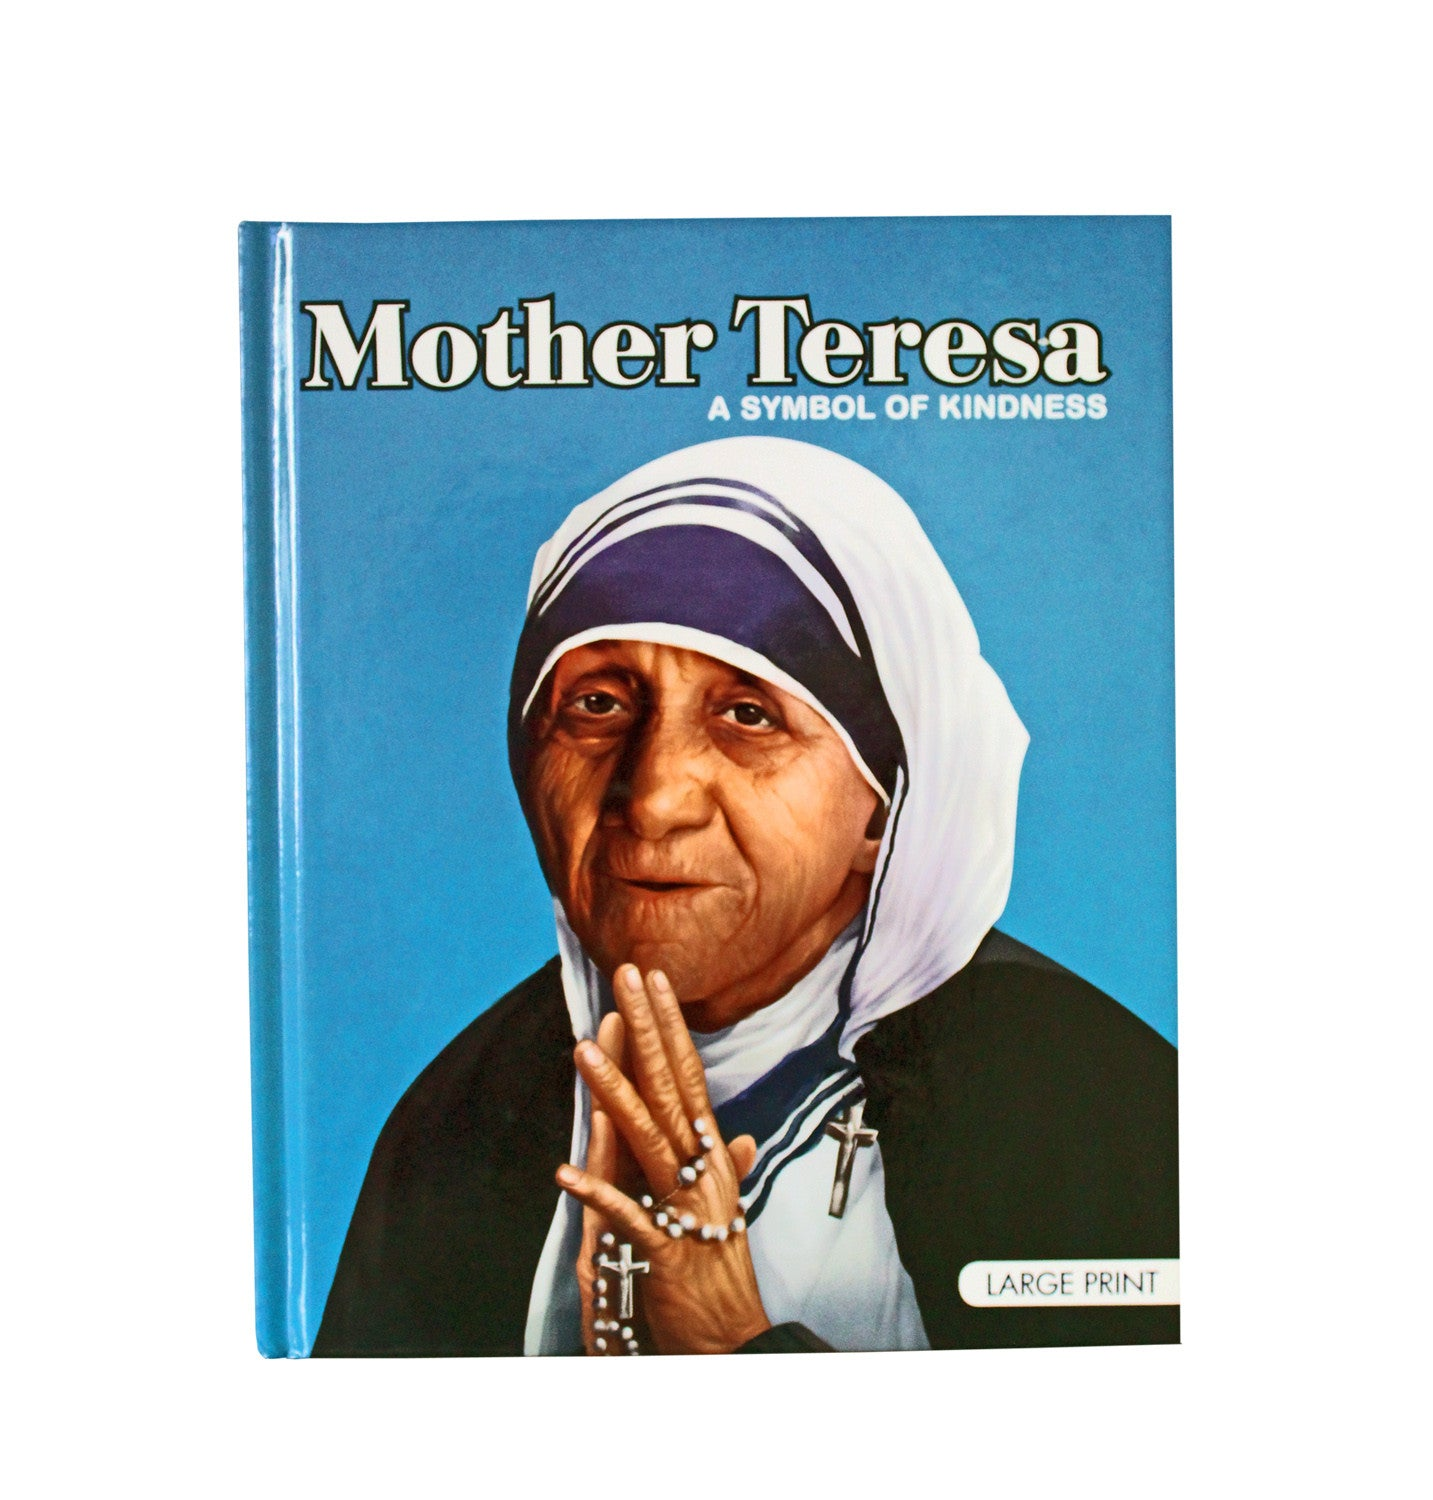 illustrate how mother teresa demonstrate her kindness ideas about biography of mother teresa great ideas about biography of mother teresa great